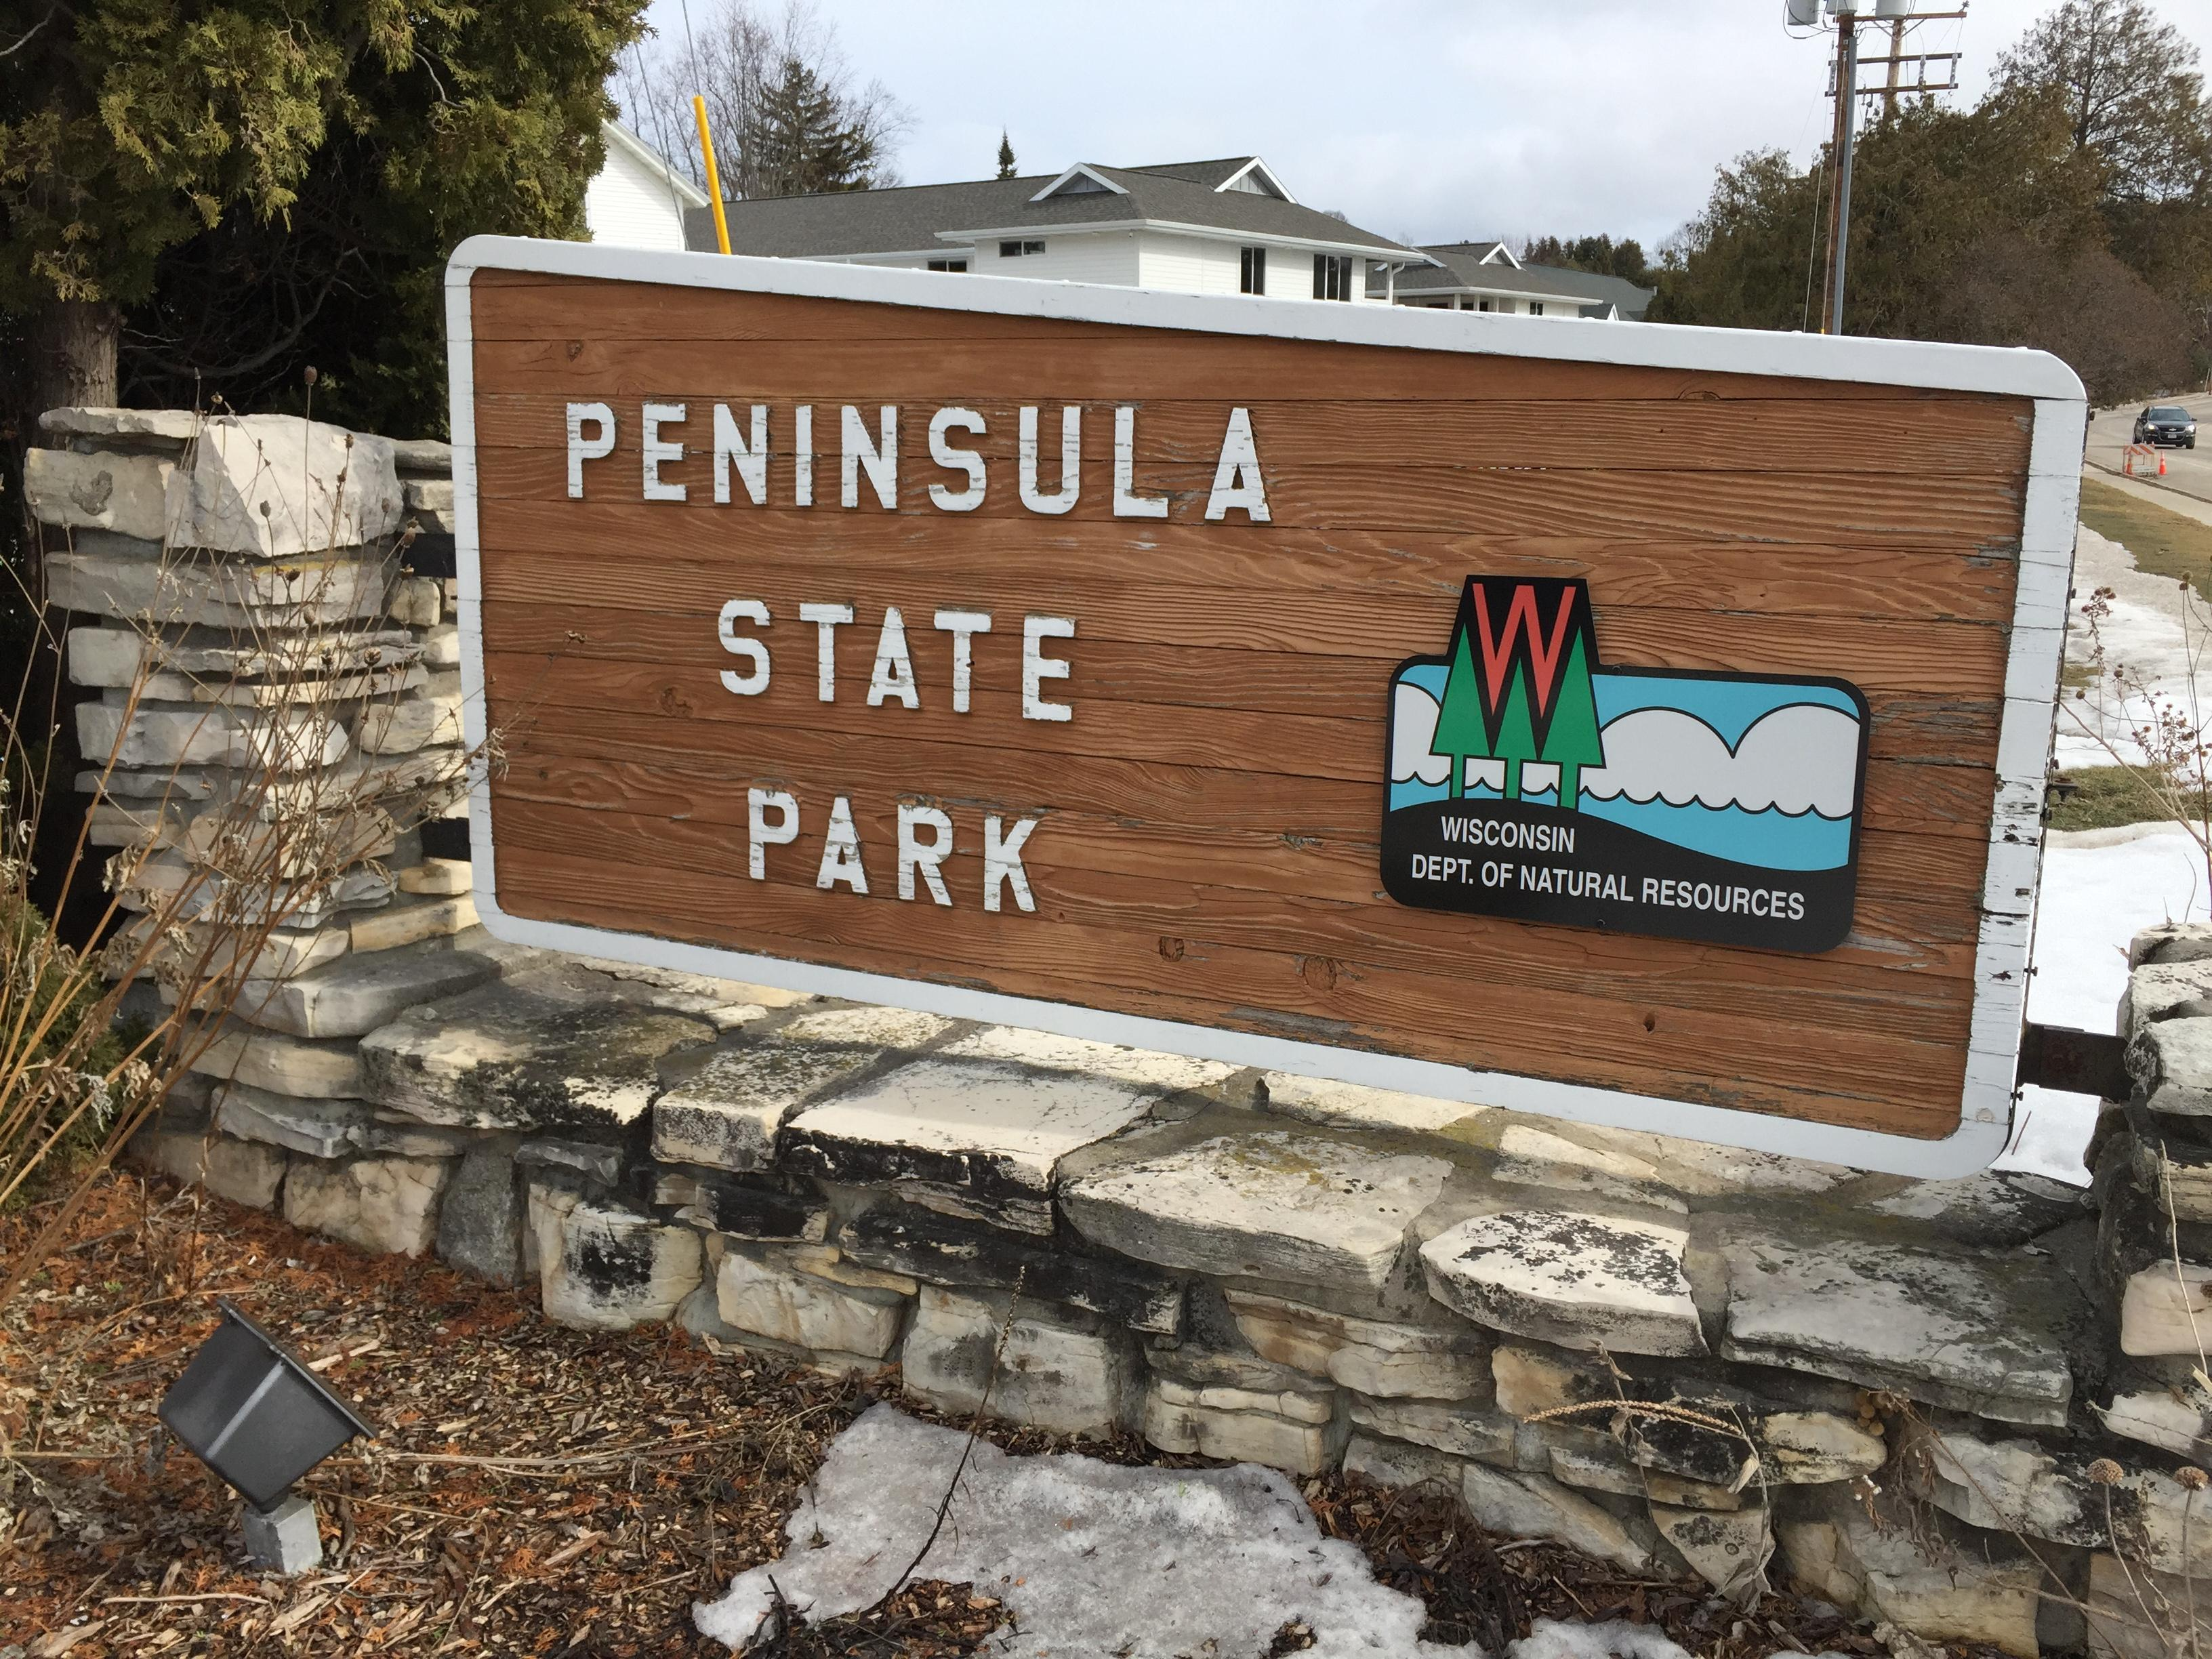 Peninsula State Park sign in Door County, March 1, 2018 (WLUK/Eric Peterson)